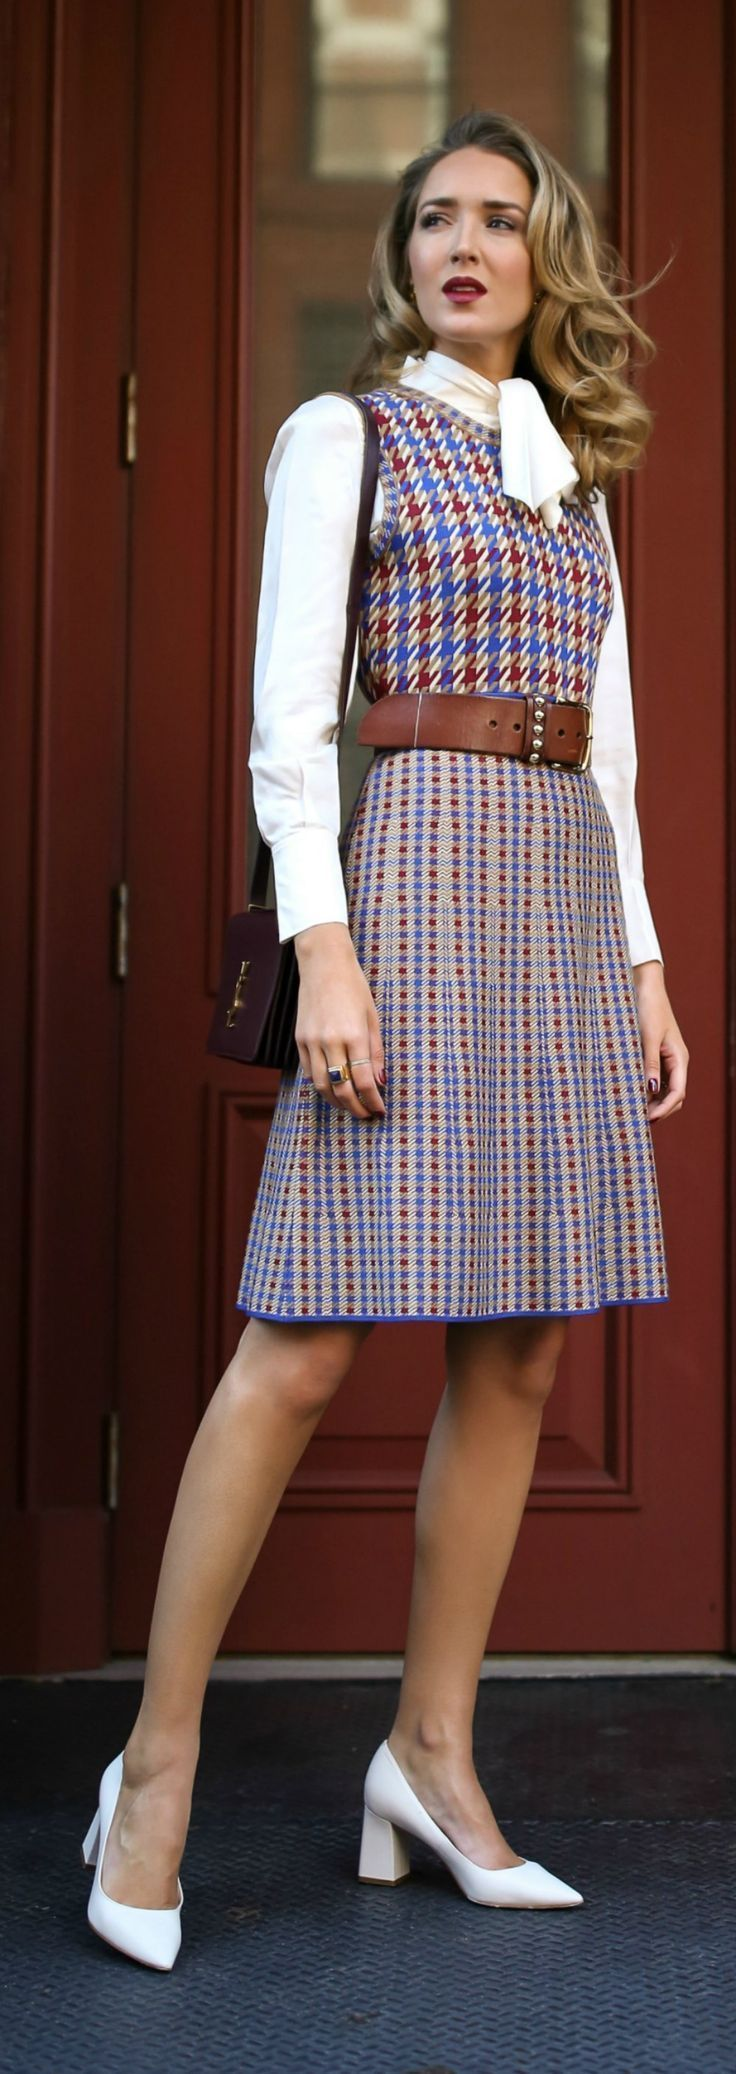 What to wear on Thanksgiving //  Blue, red and white checked knit dress, white tie-neck blouse, brown leather waist belt, white block heel pumps, suede burgundy crossbody bag {Tory Burch, YSL, fall fashion, what to wear on Thanksgiving, Thanksgiving outfit, classic fall dress, street style, classic dressing}